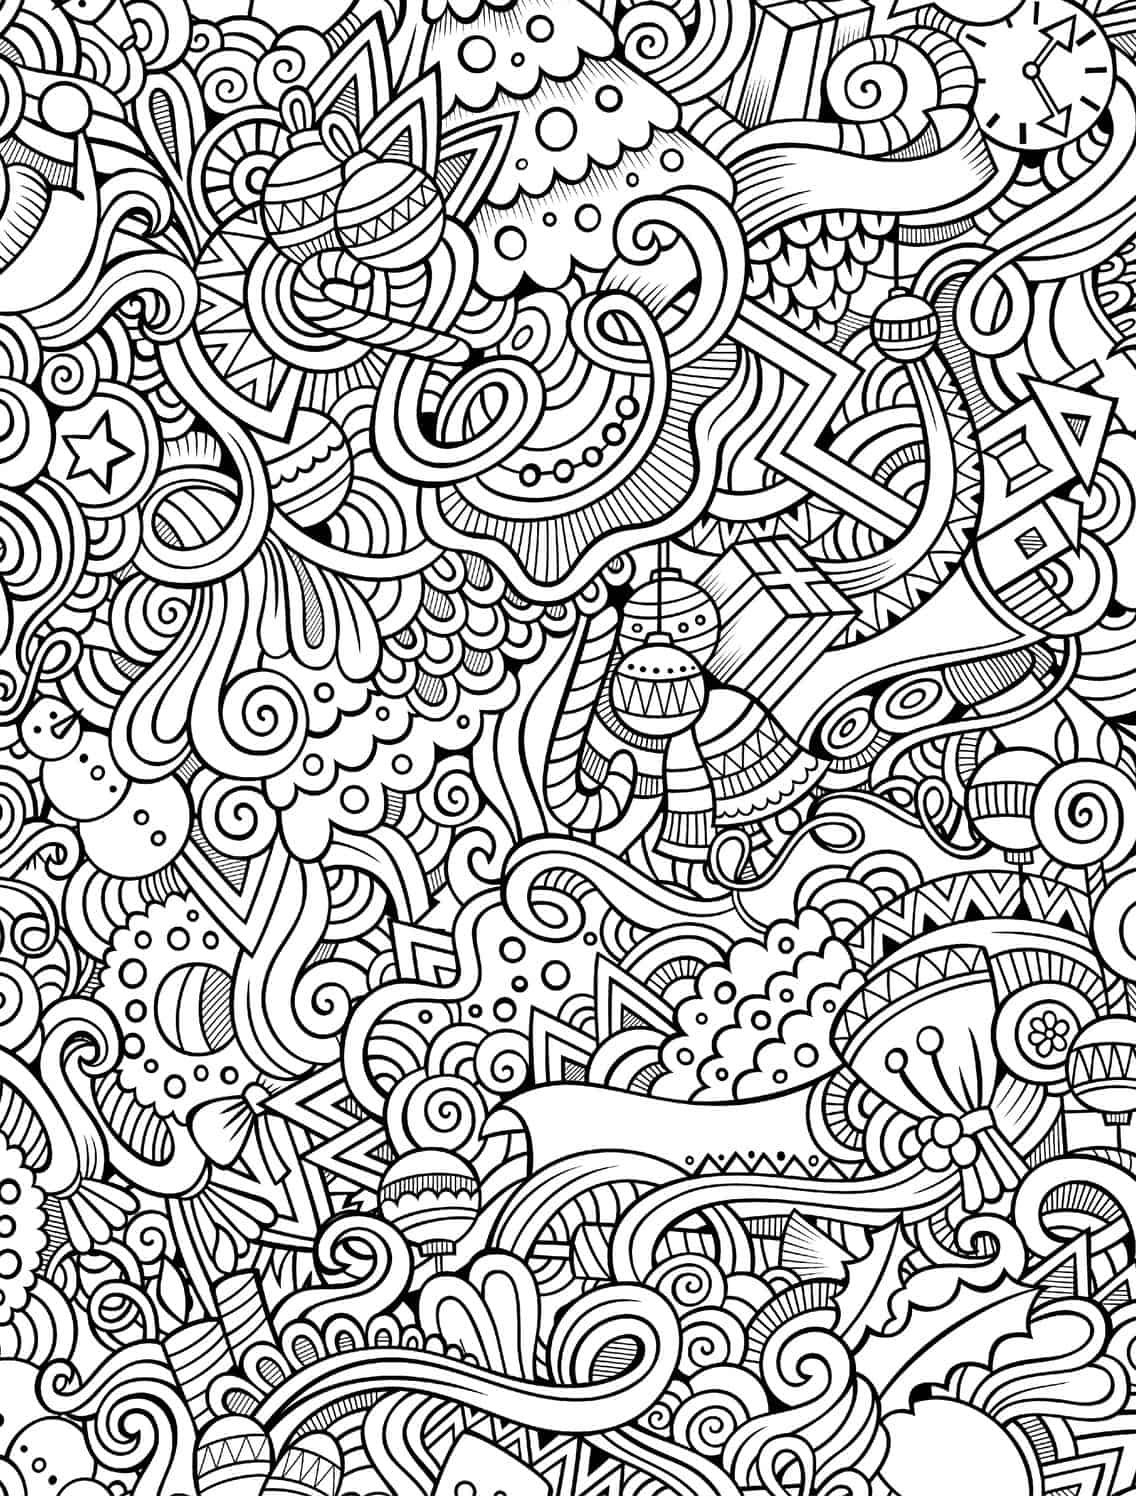 10 free printable holiday adult coloring pages. Black Bedroom Furniture Sets. Home Design Ideas